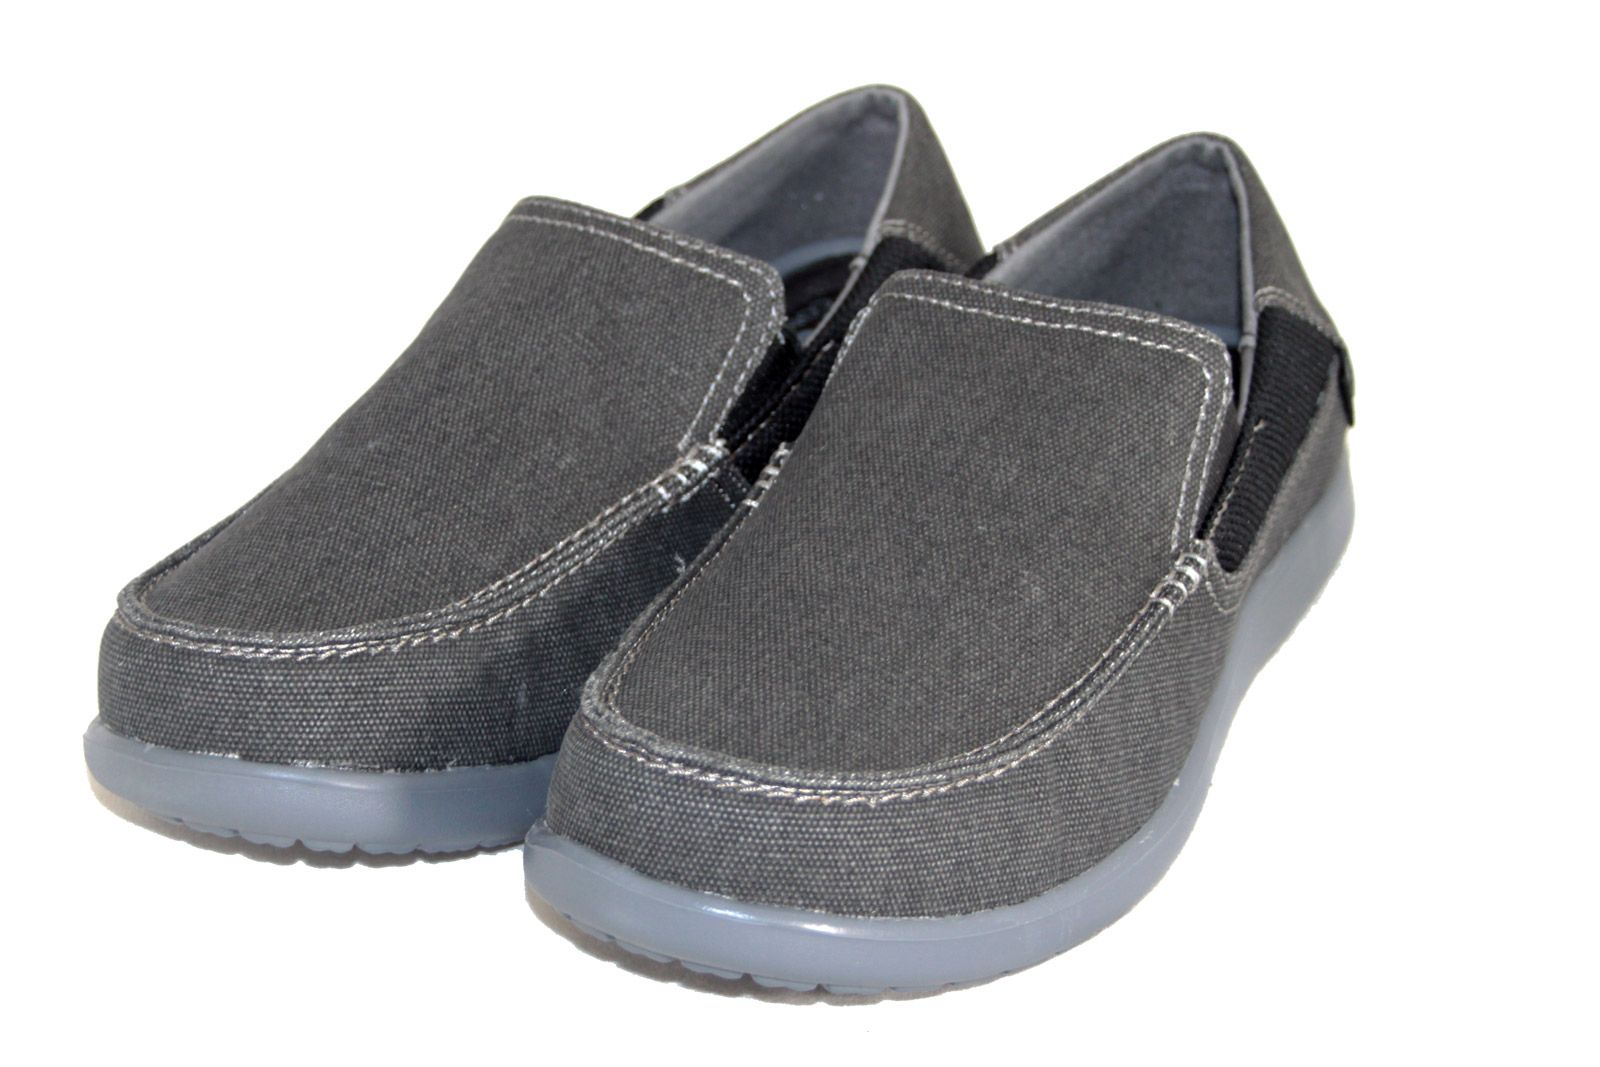 Mens Crocs Santa Cruz 2 Luxe Leather Charcoal Slip On Loafers with Soft Footbed